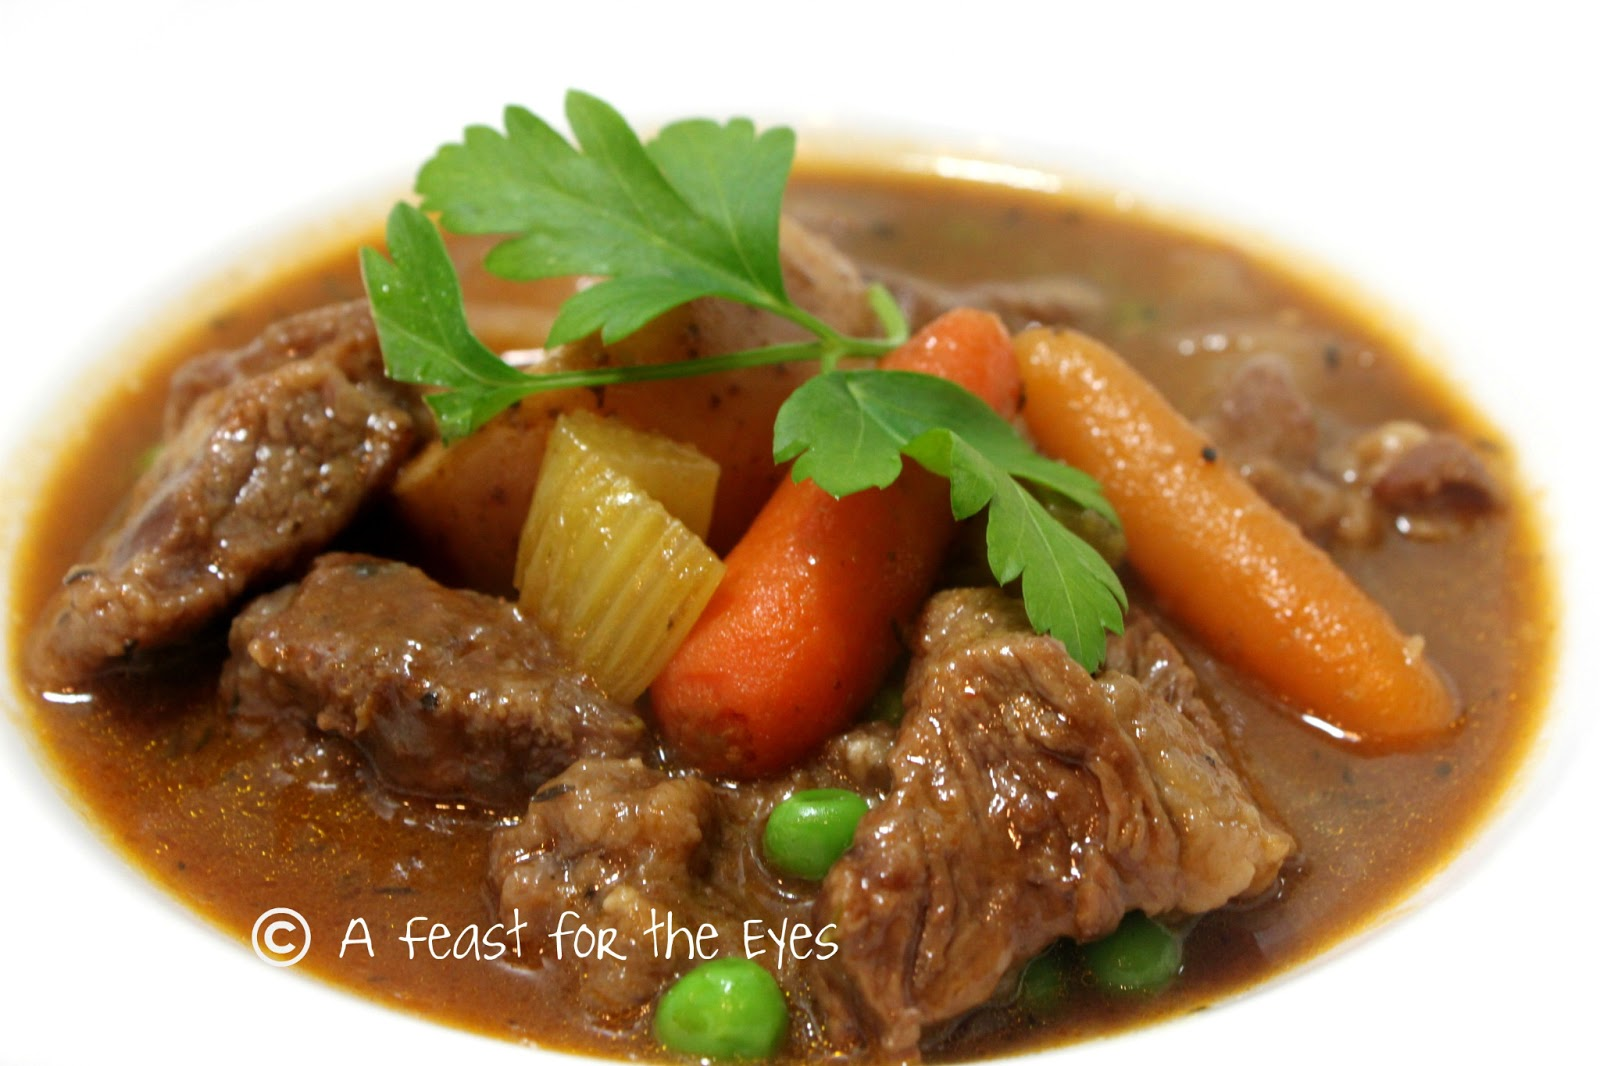 Feast for the Eyes: Classic Beef Stew for a rainy day in California